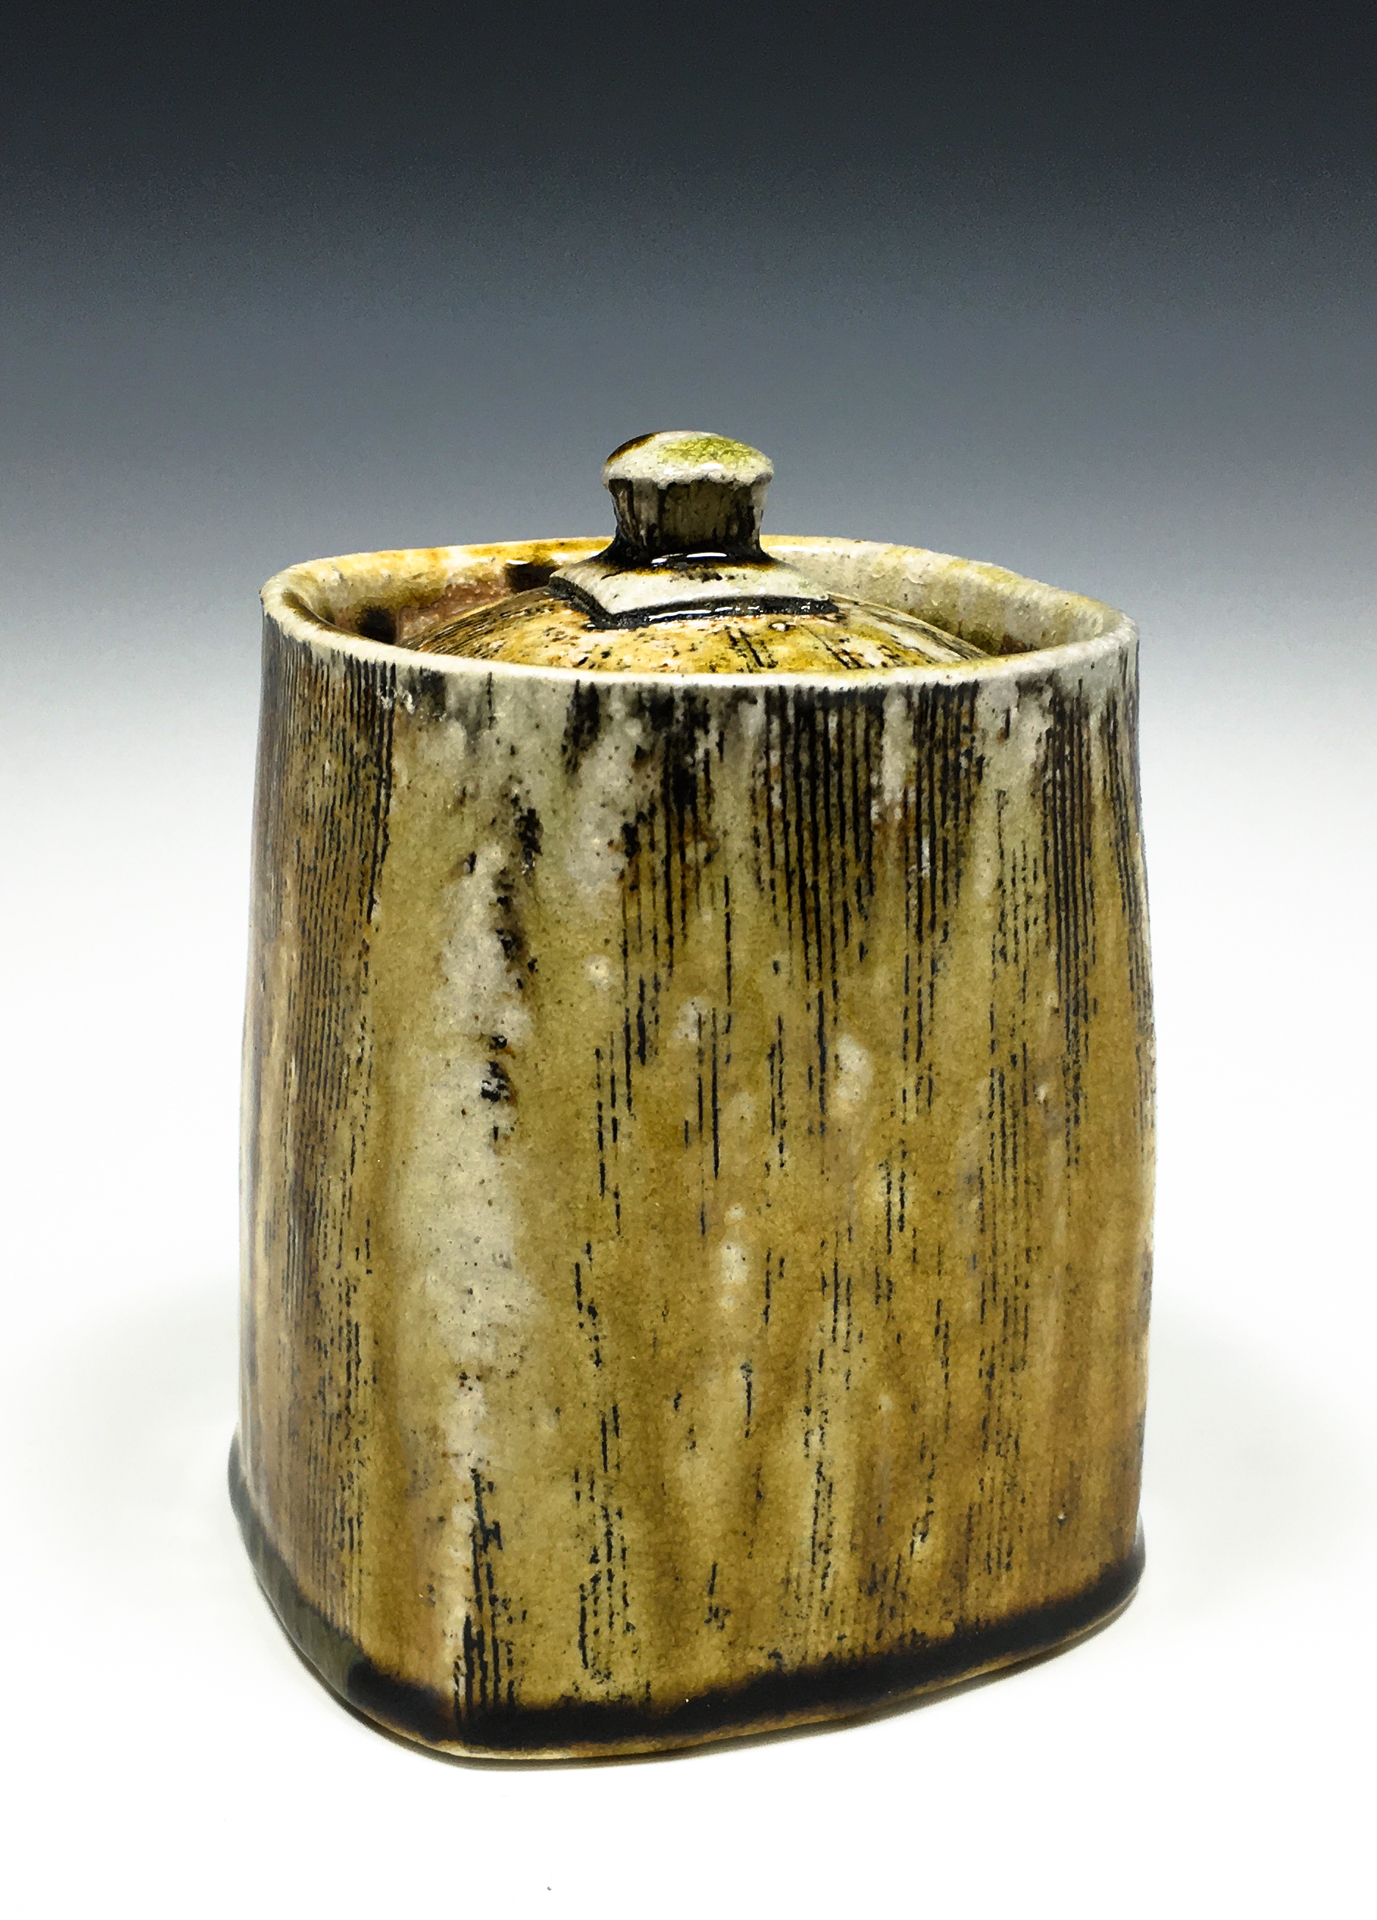 Yellow Jar 12-15.jpg